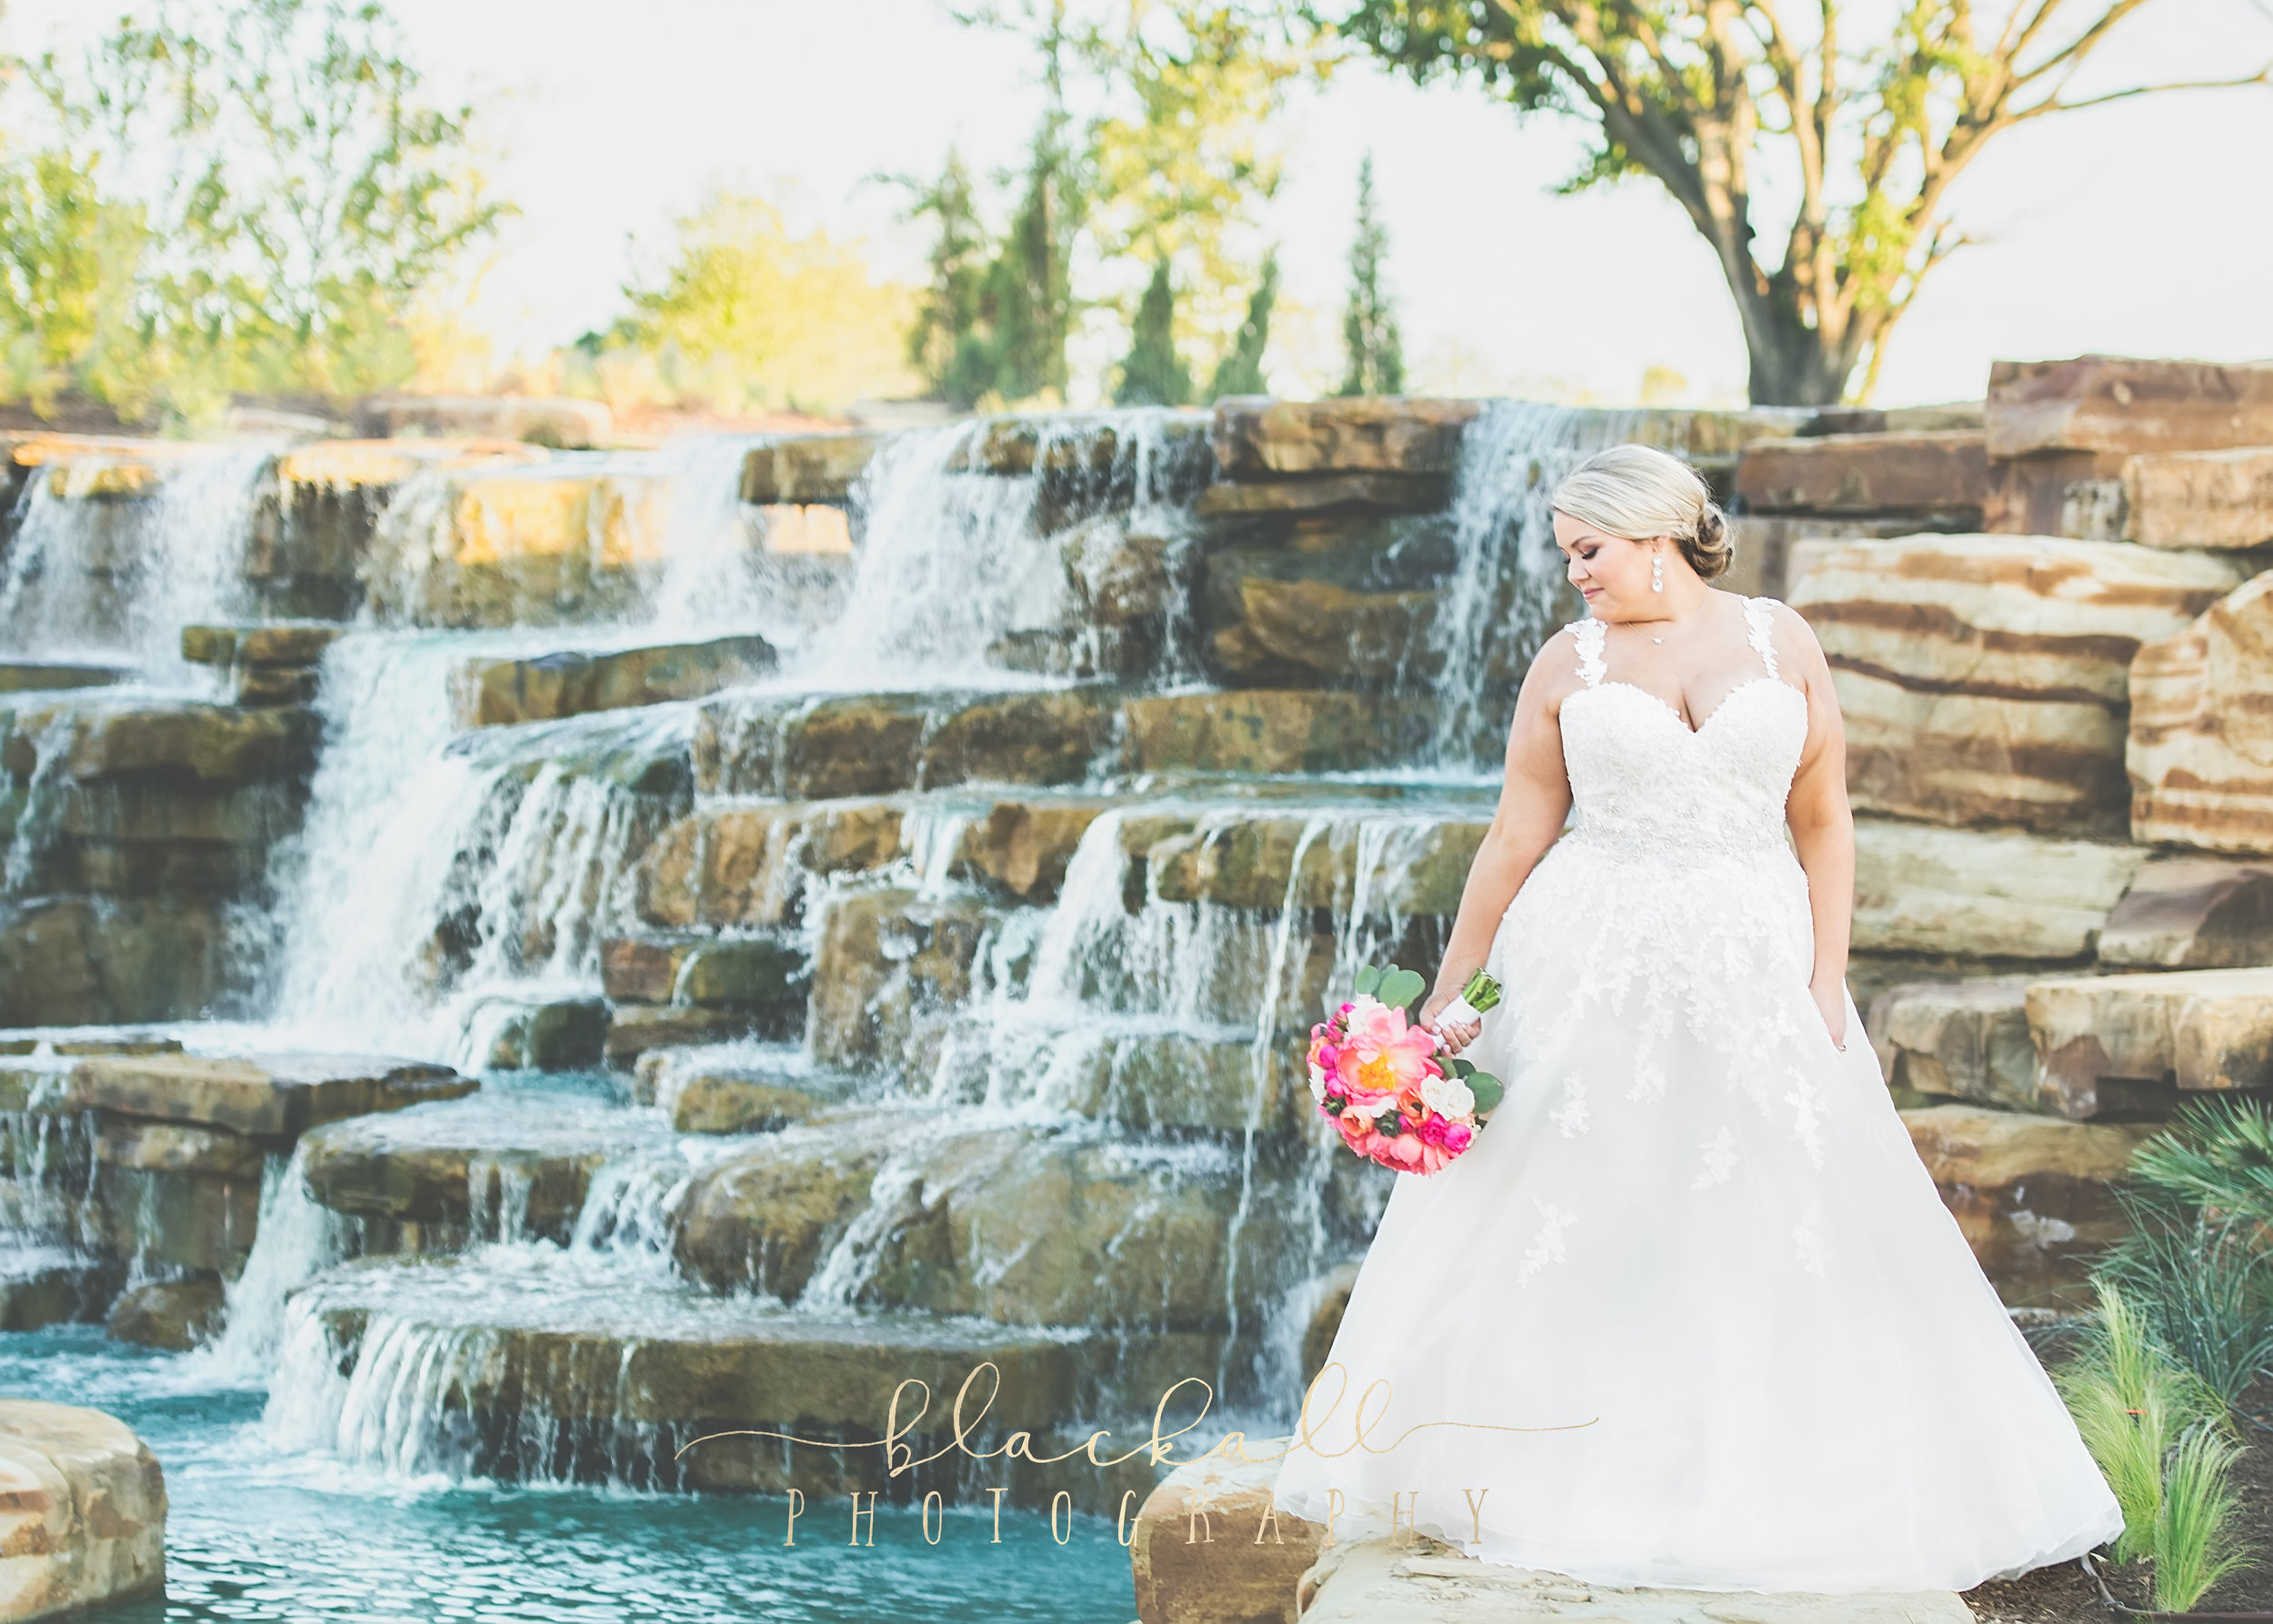 BRIDAL_ BlackallPhotography_24.jpg